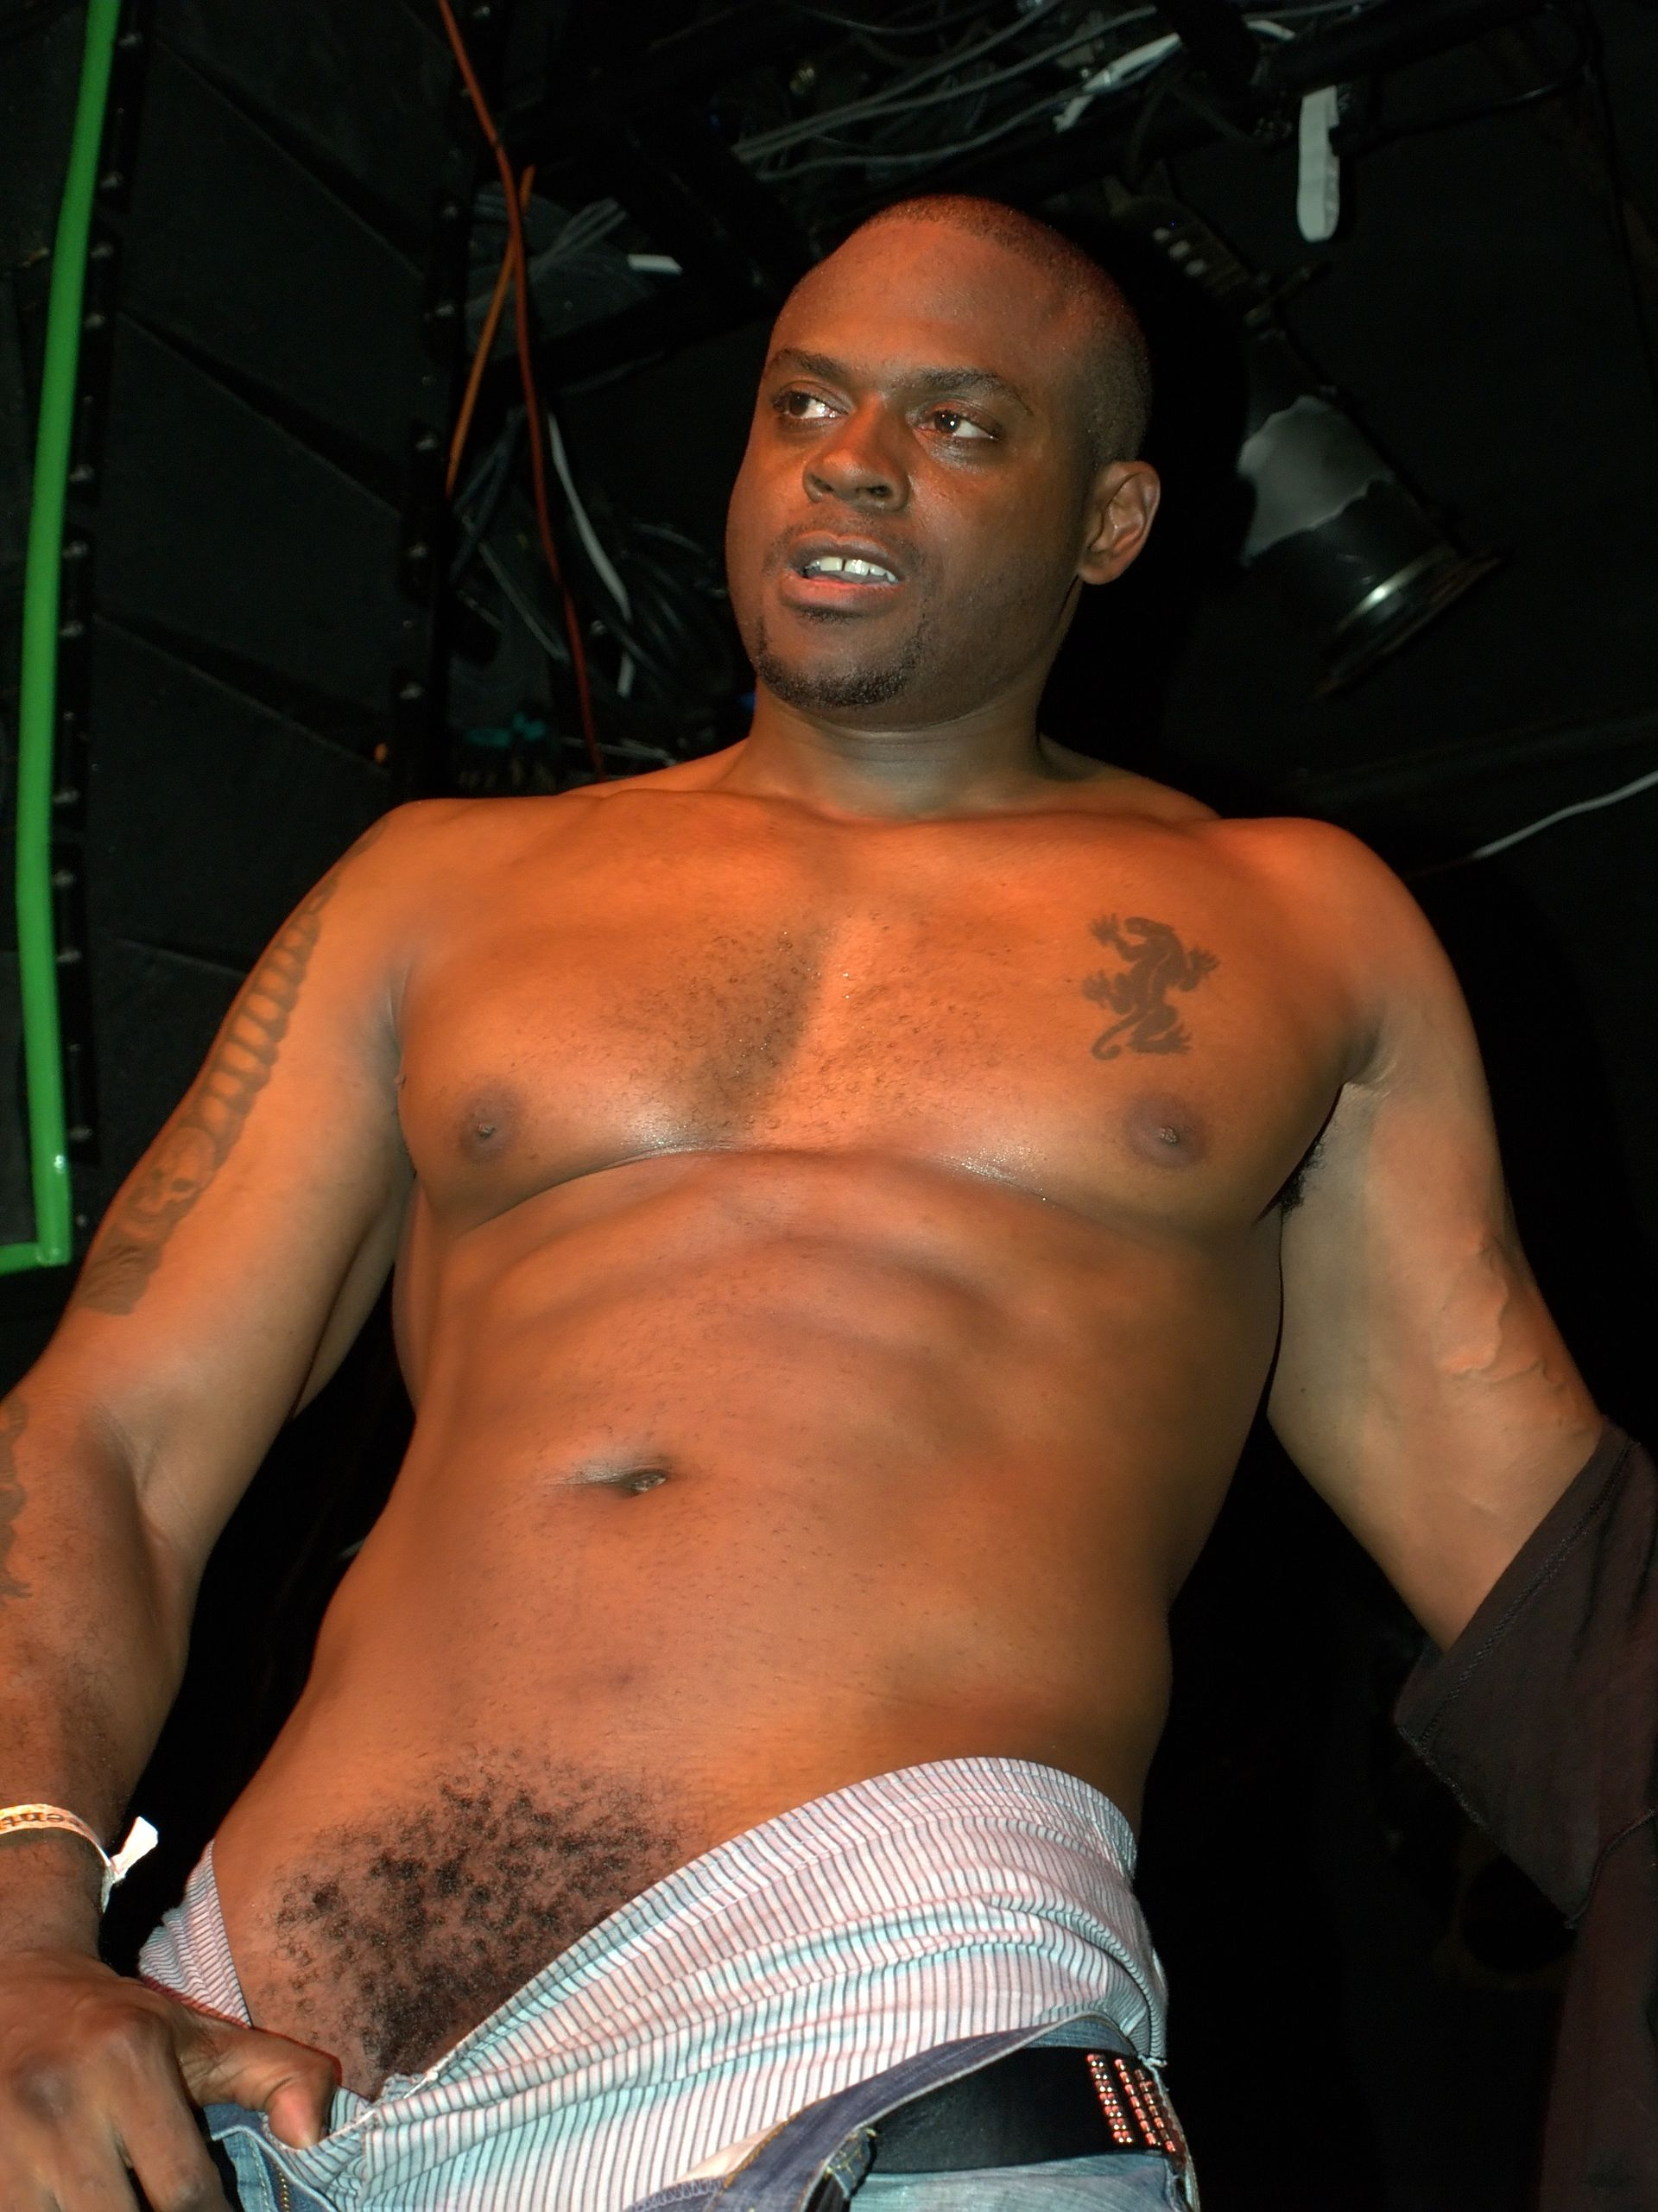 from Malaki gay adult upload